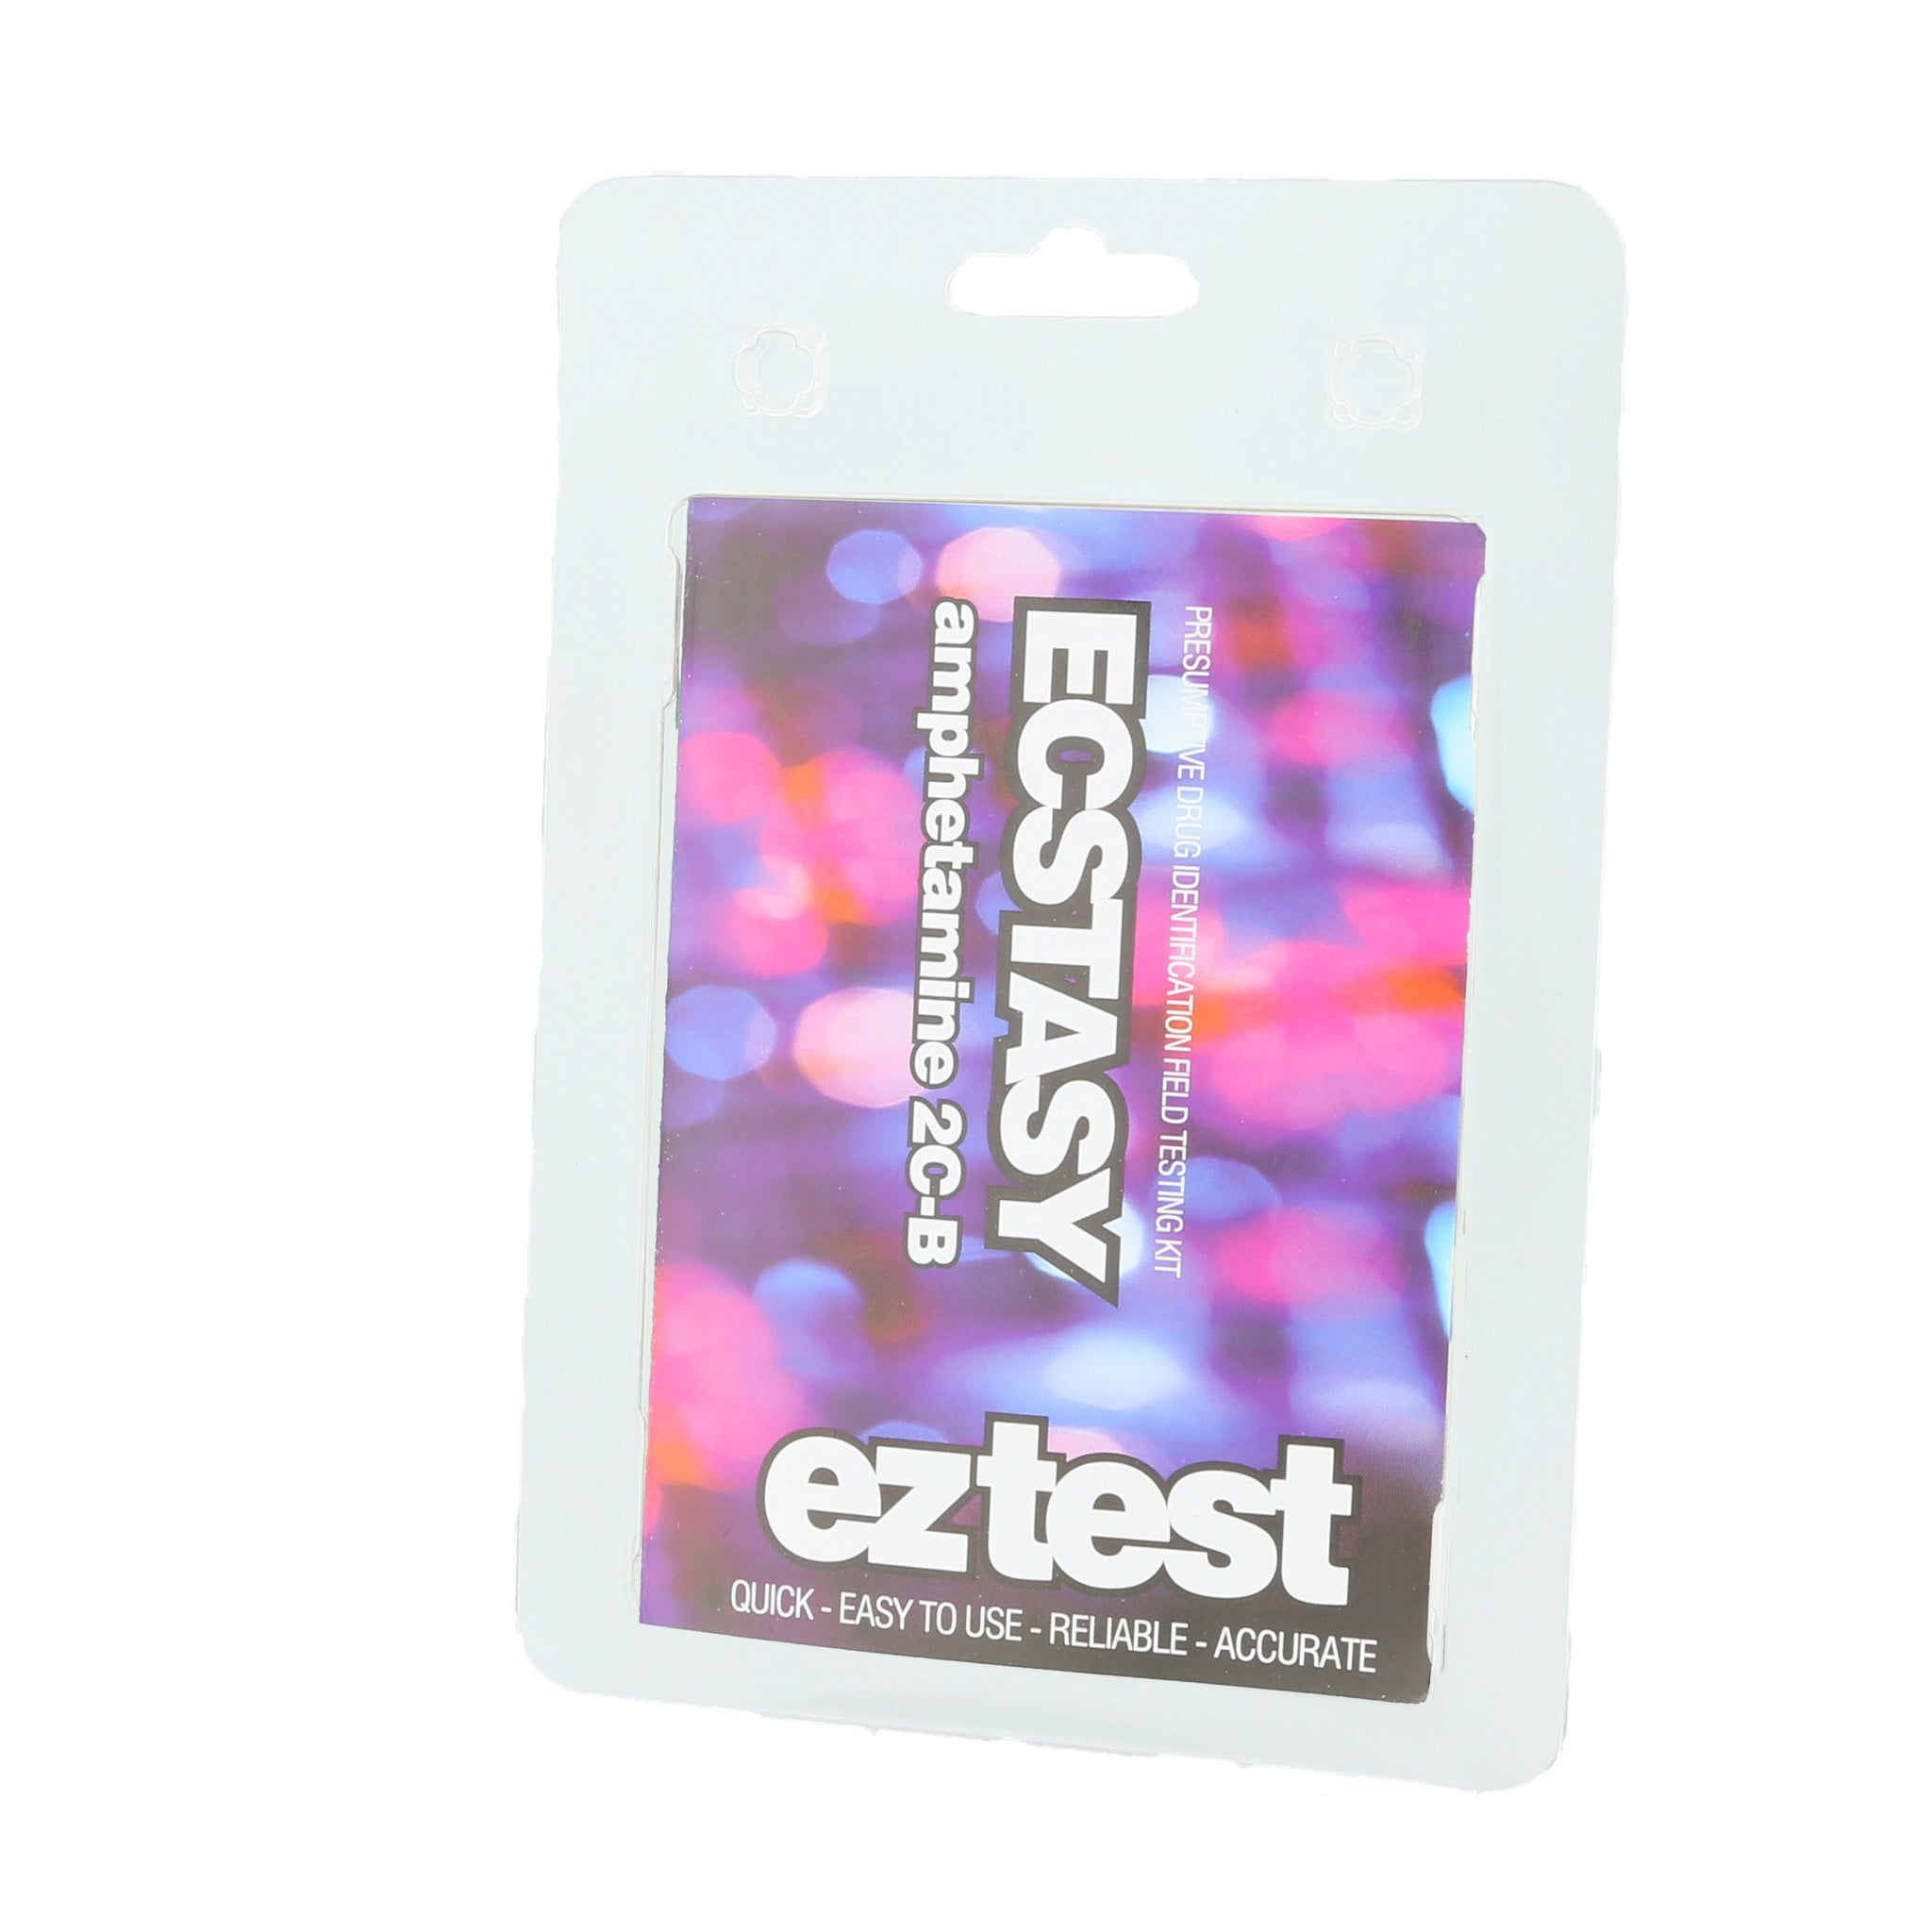 Eztest Tube for Ecstacy/MDMA - Cheeky Ninjas